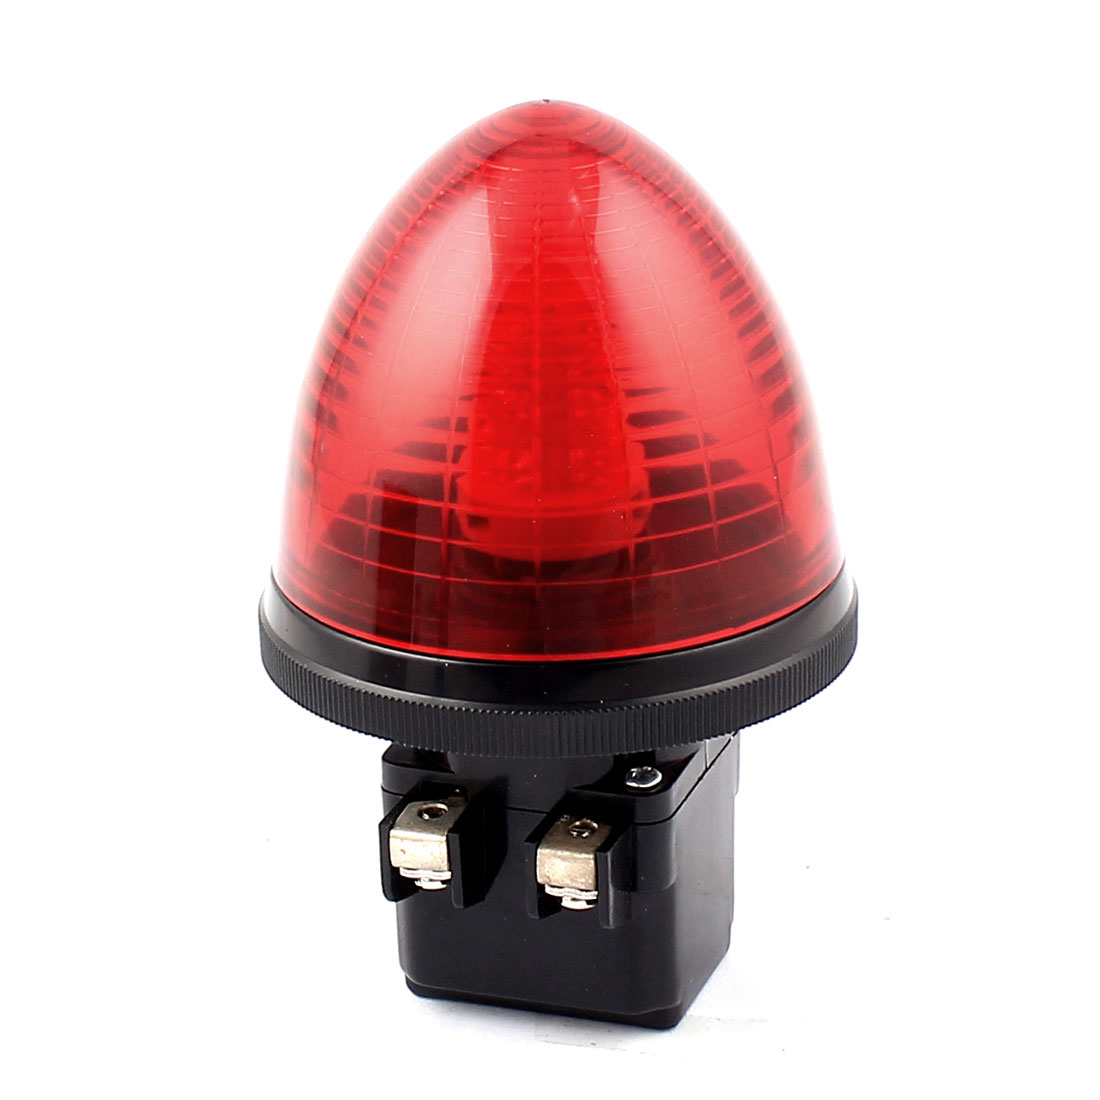 DC 24V Red LED Light Screw Clamp Terminals Industrial Alarm Lamp